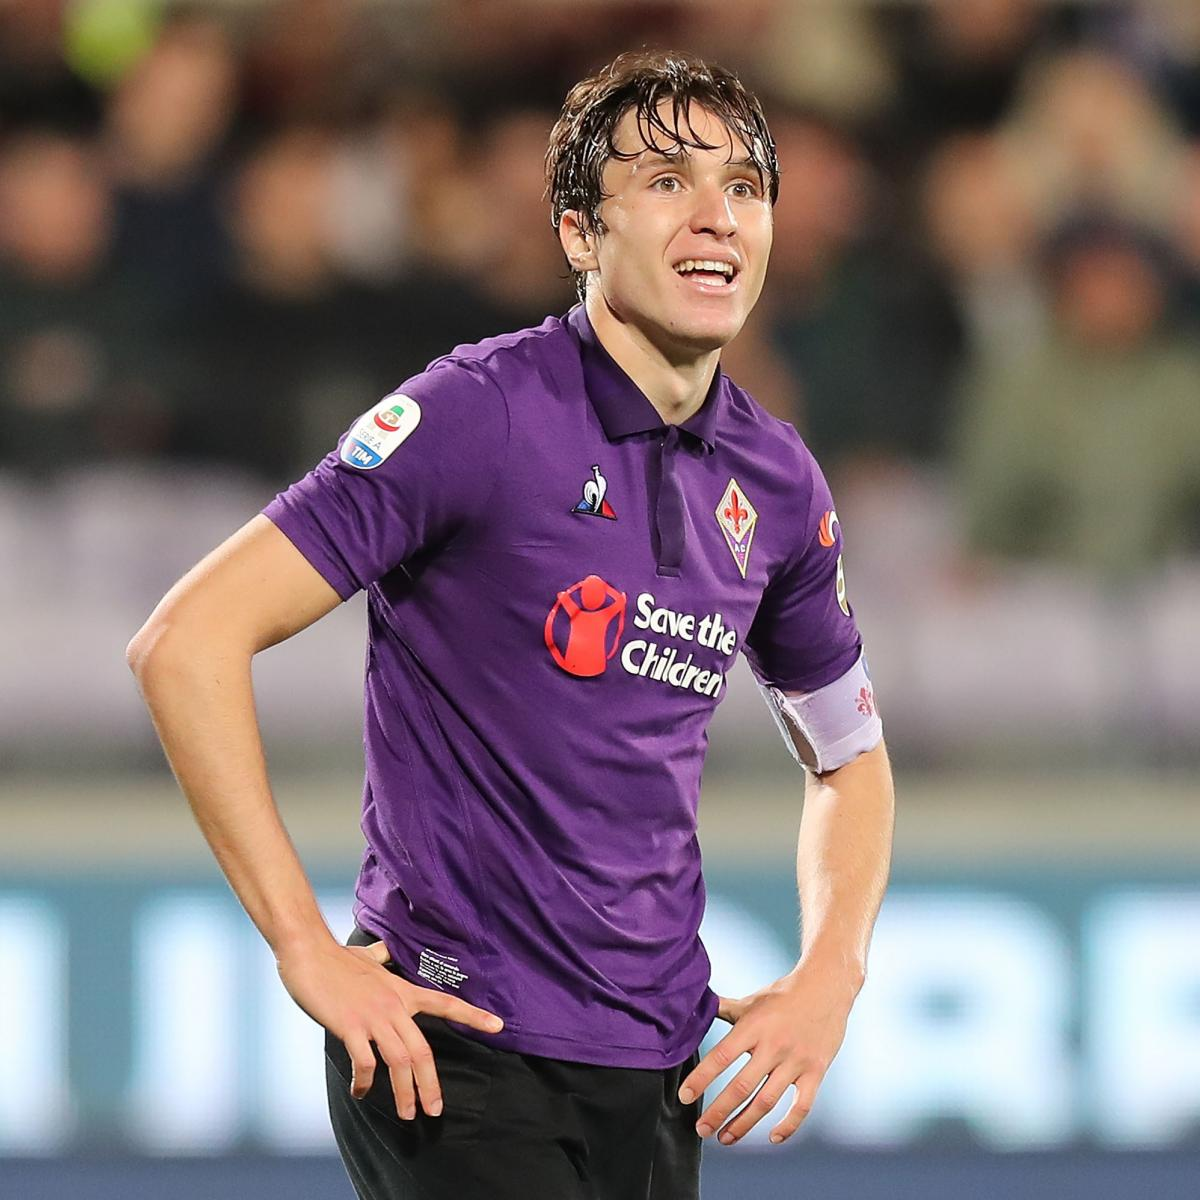 Fiorentina President Dismisses Federico Chiesa Transfer Amid Juventus Rumours Bleacher Report Latest News Videos And Highlights